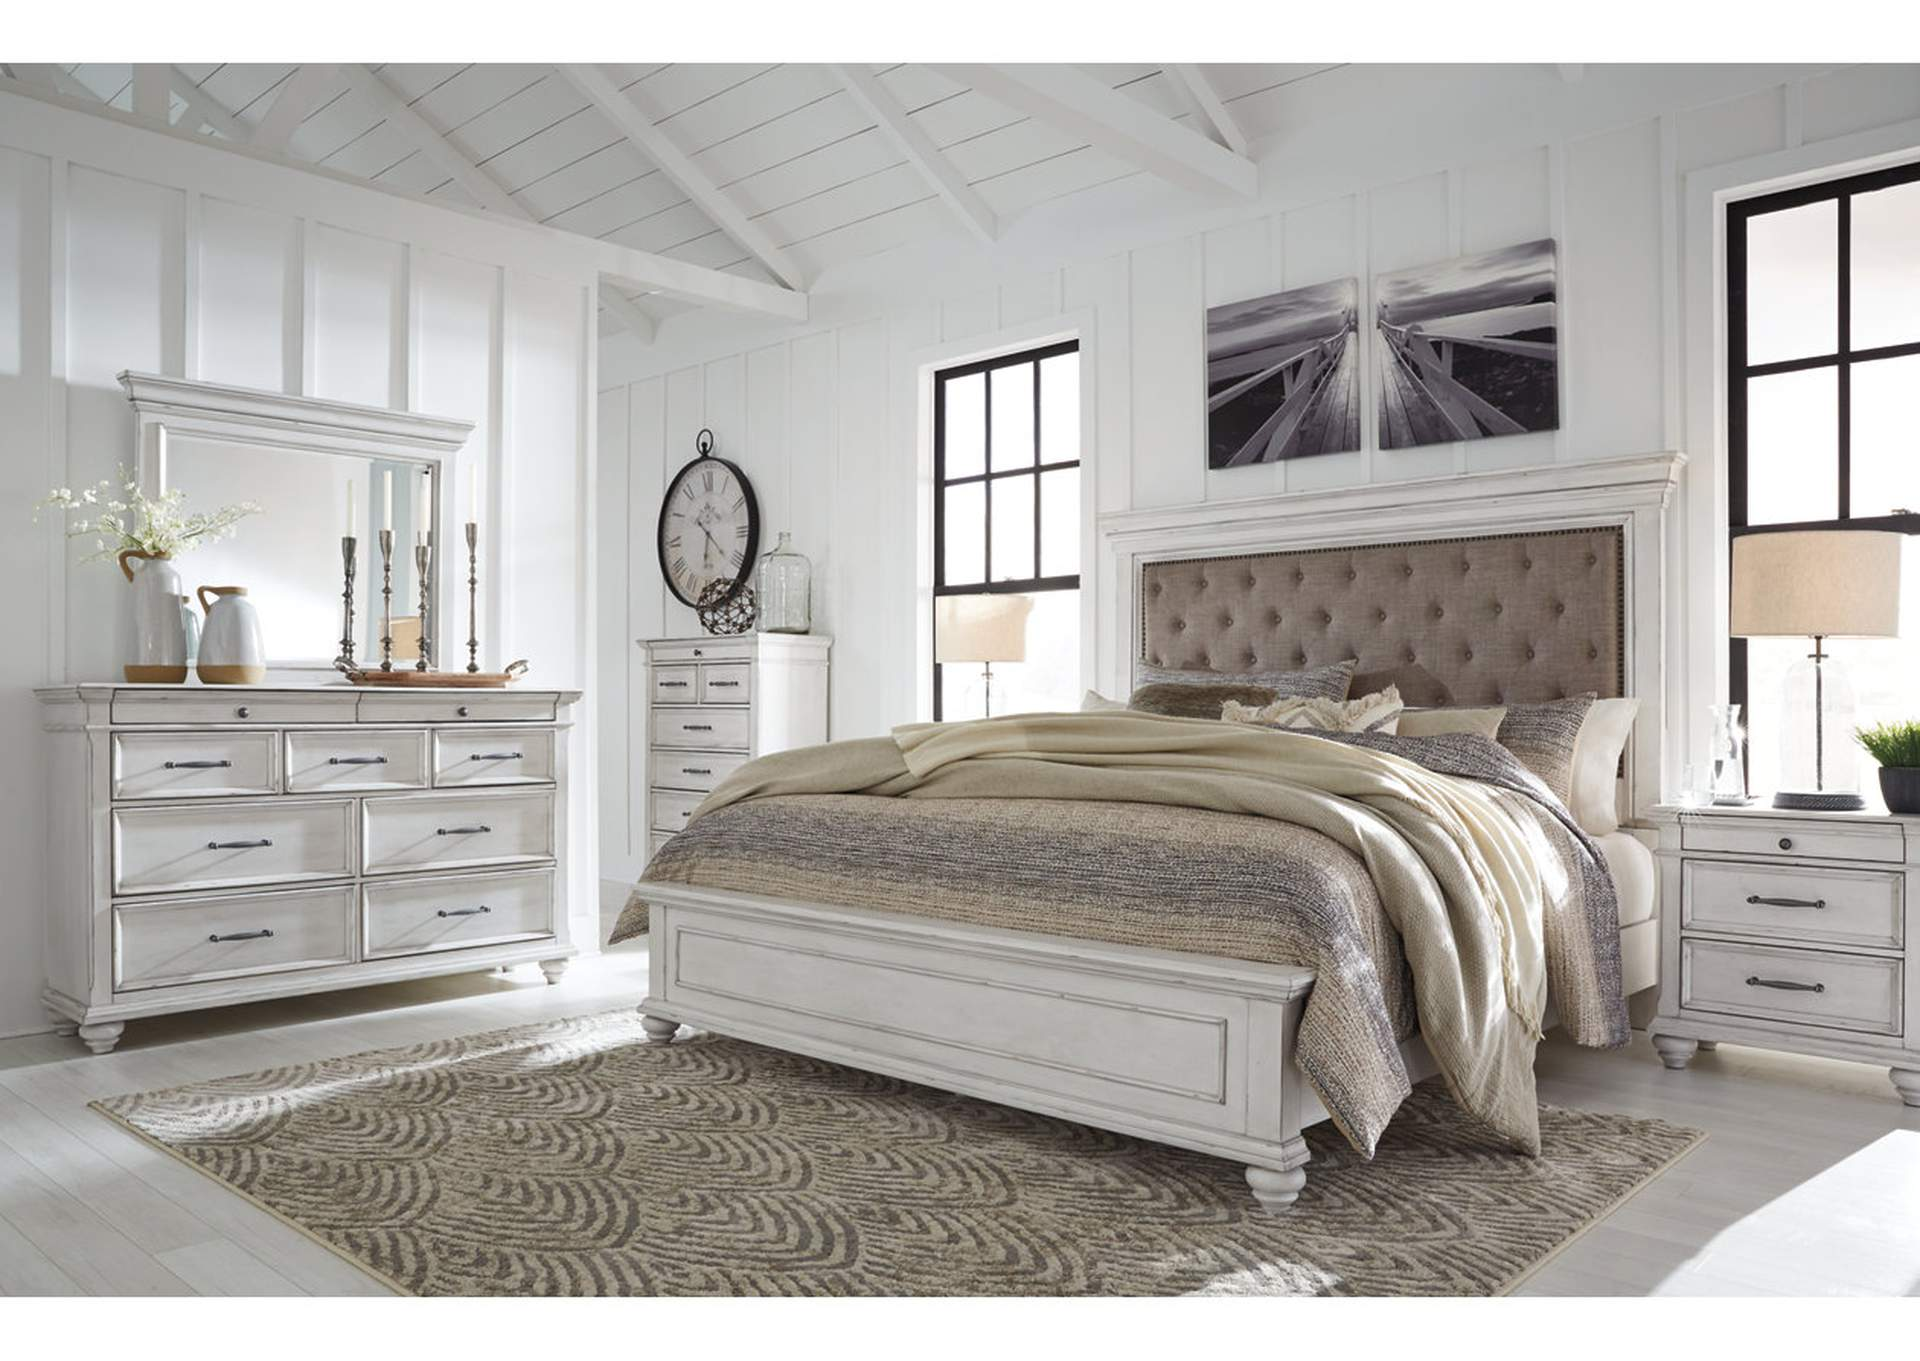 Kanwyn Whitewash California King Upholstered Panel Bed w/Dresser & Mirror,Benchcraft